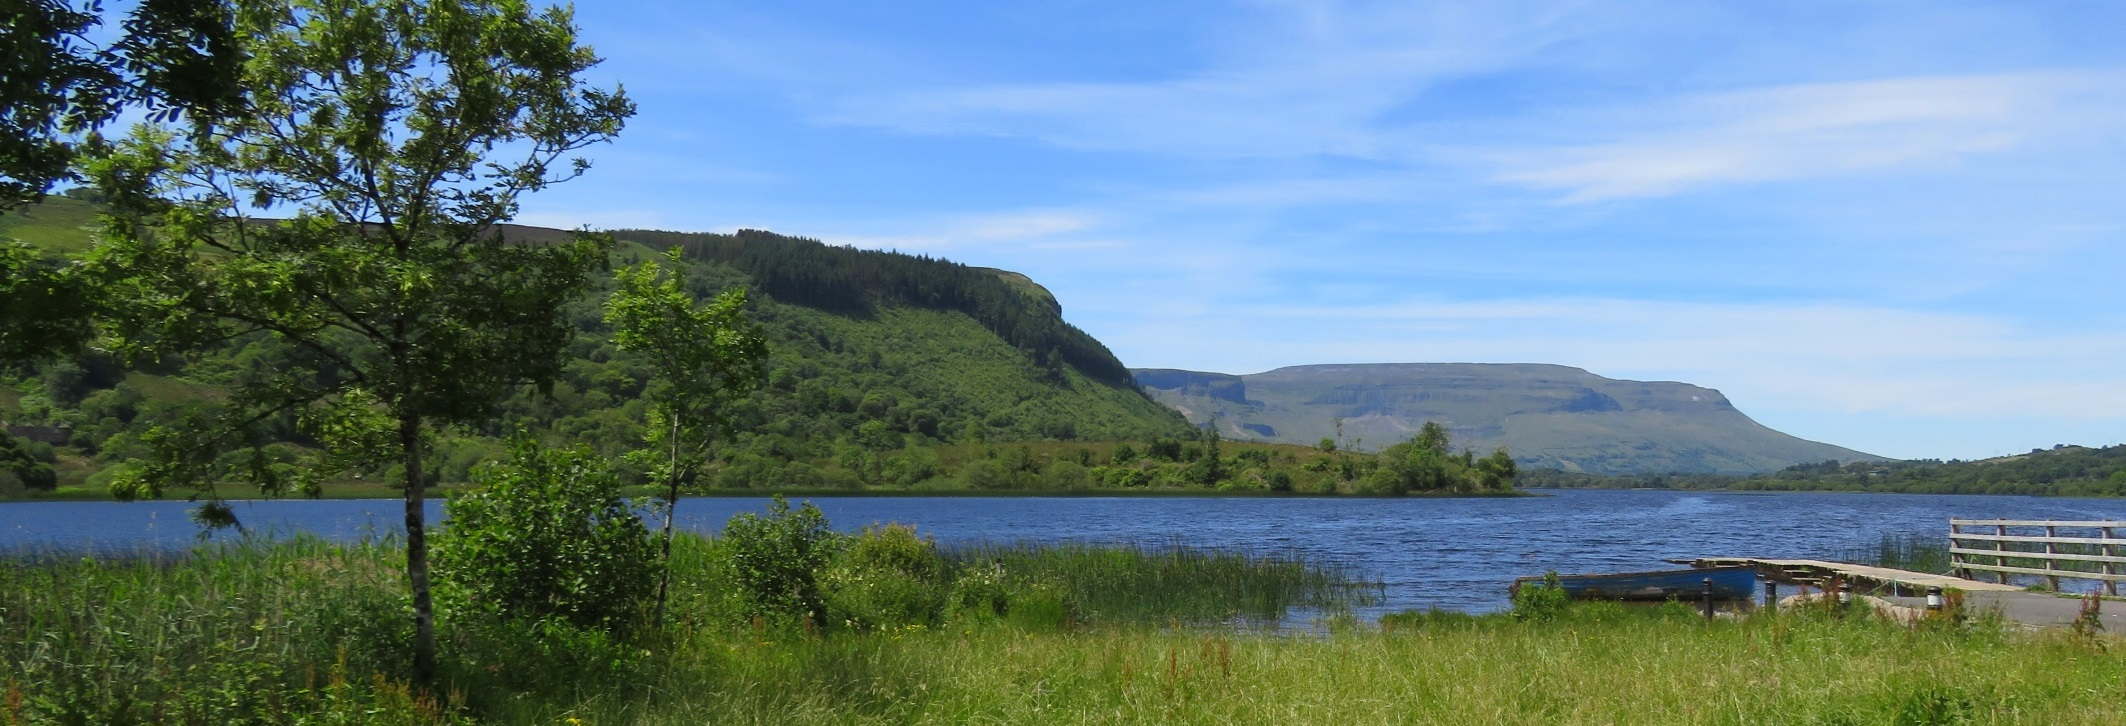 Cycling Holiday in Ireland at Glenade lake